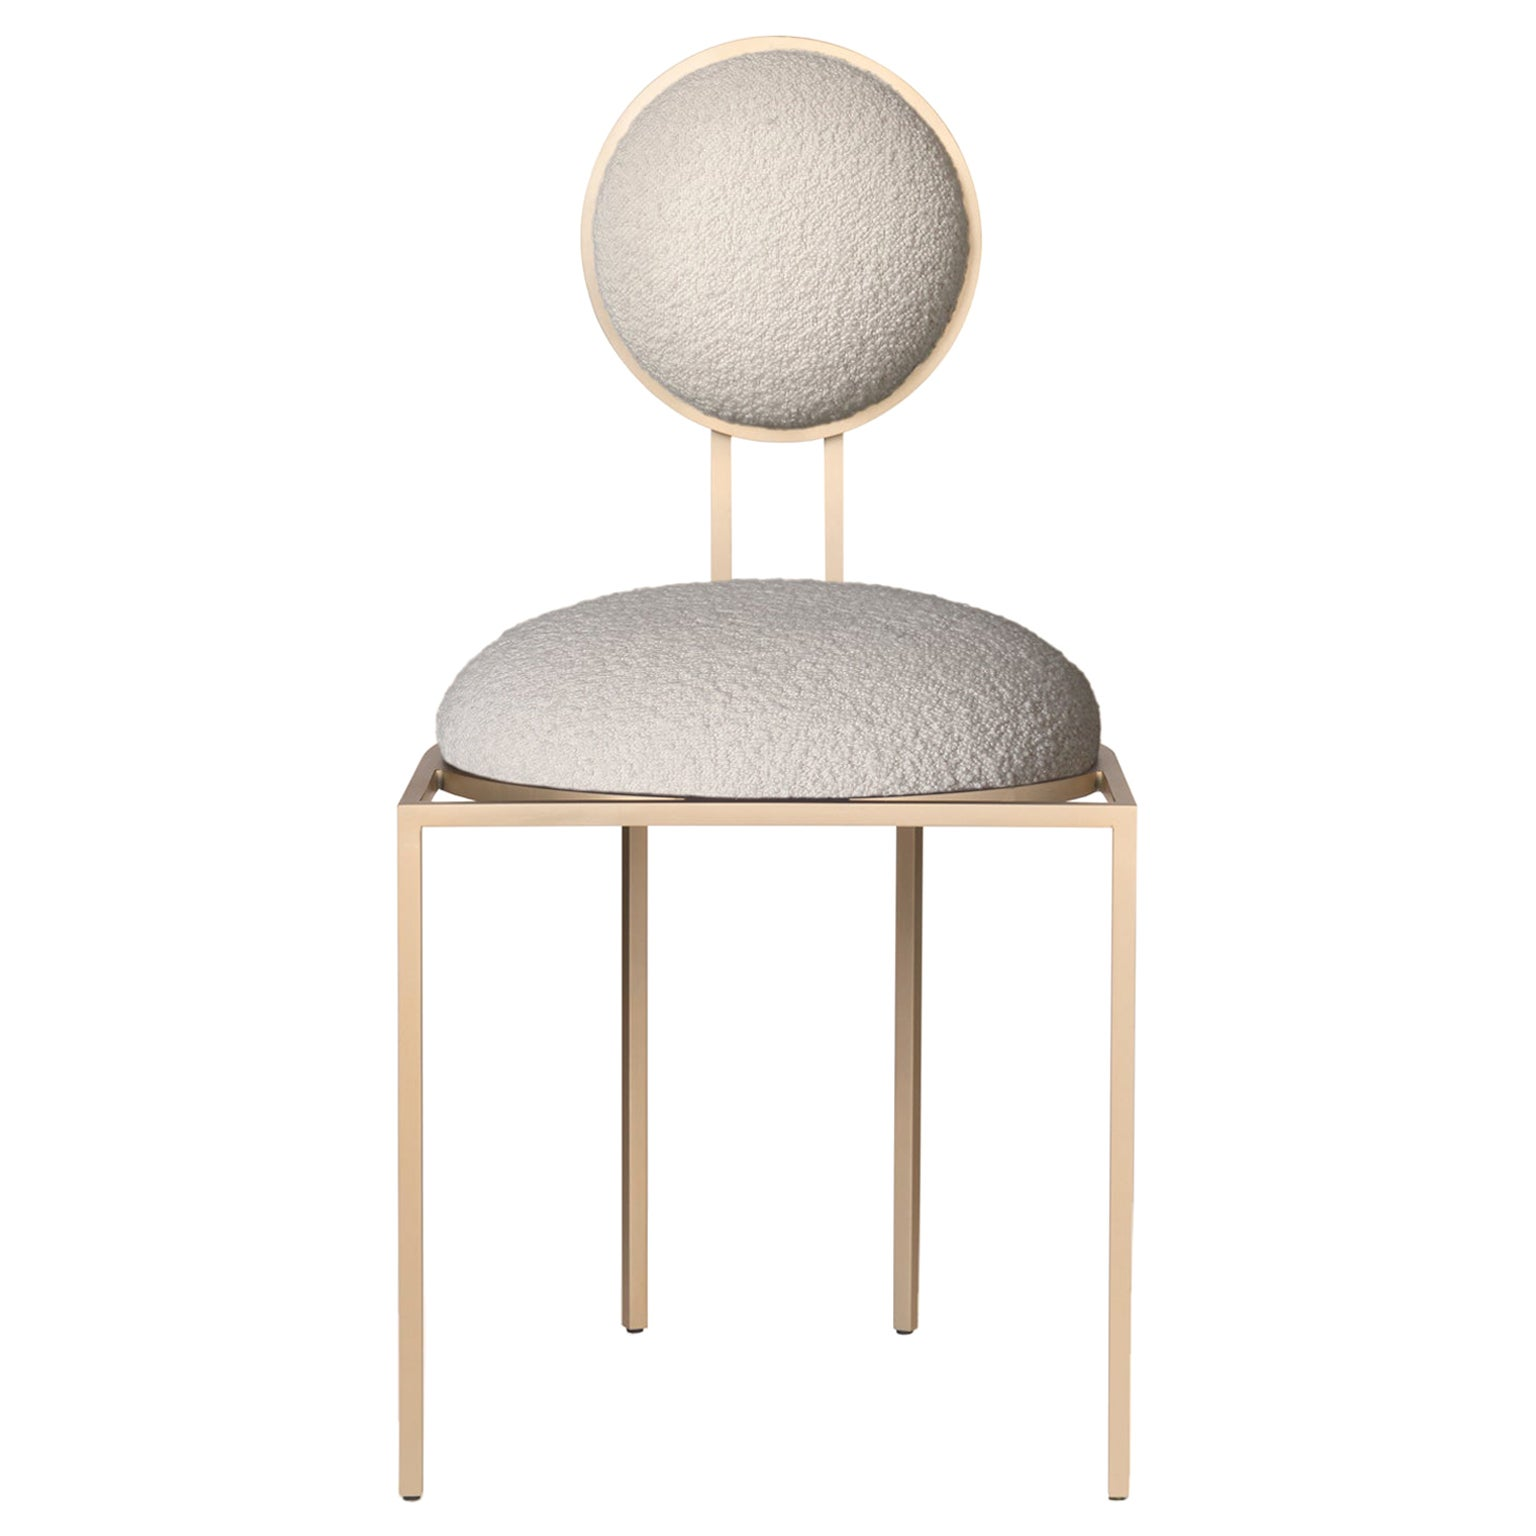 Orbit Dining Chair in Cream Boucle Wool Fabric and Brushed Brass, by Lara Bohinc